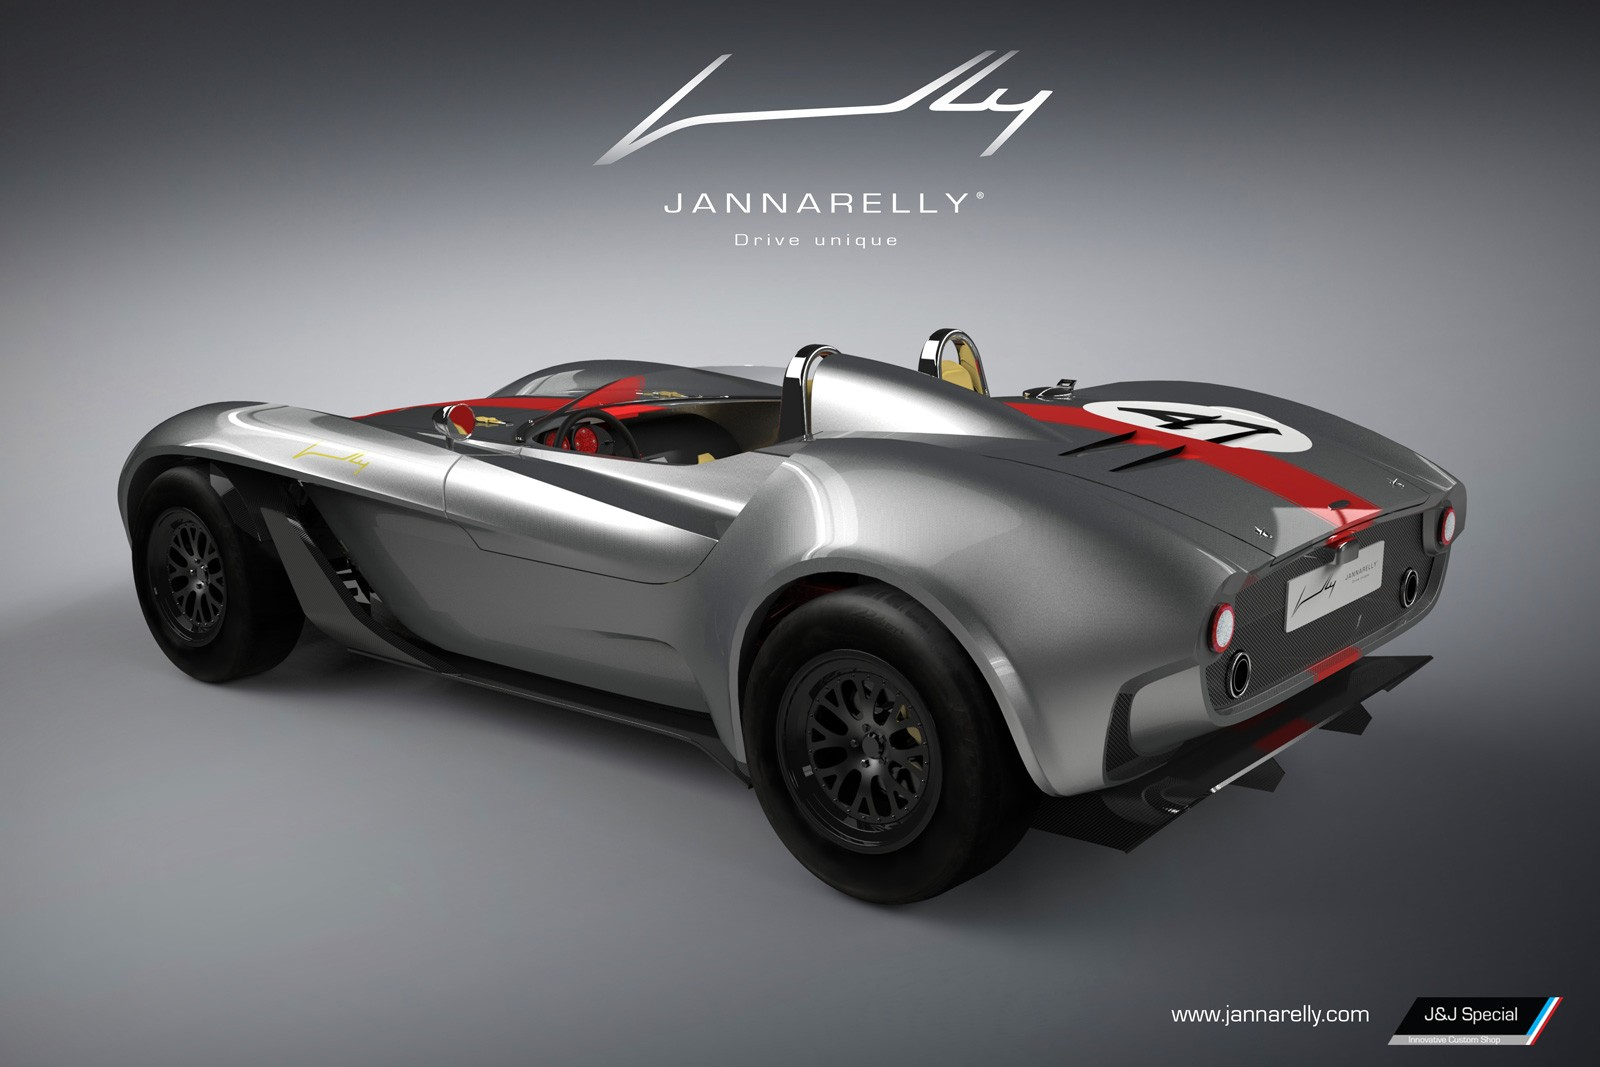 Bmw M3 A Vendre >> Lykan Hypersport Designer Launches New Jannarelly Supercar ...